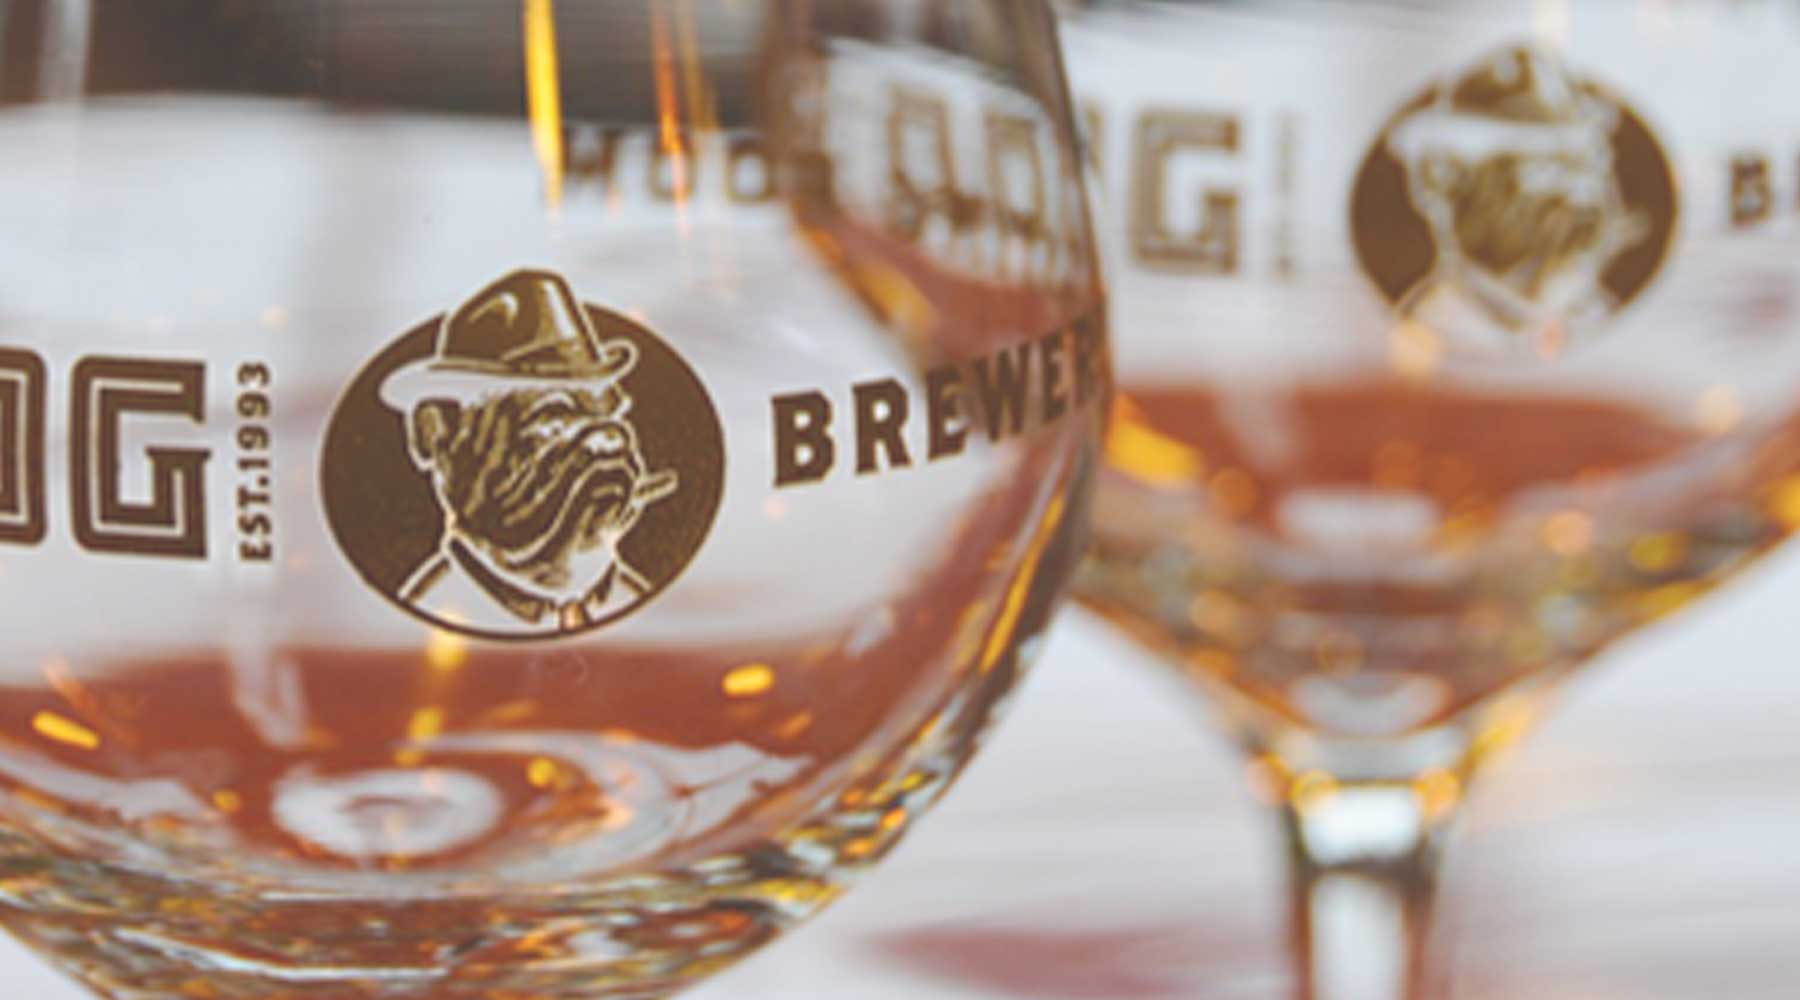 Hair of the Dog Brewing Company | Just Wine